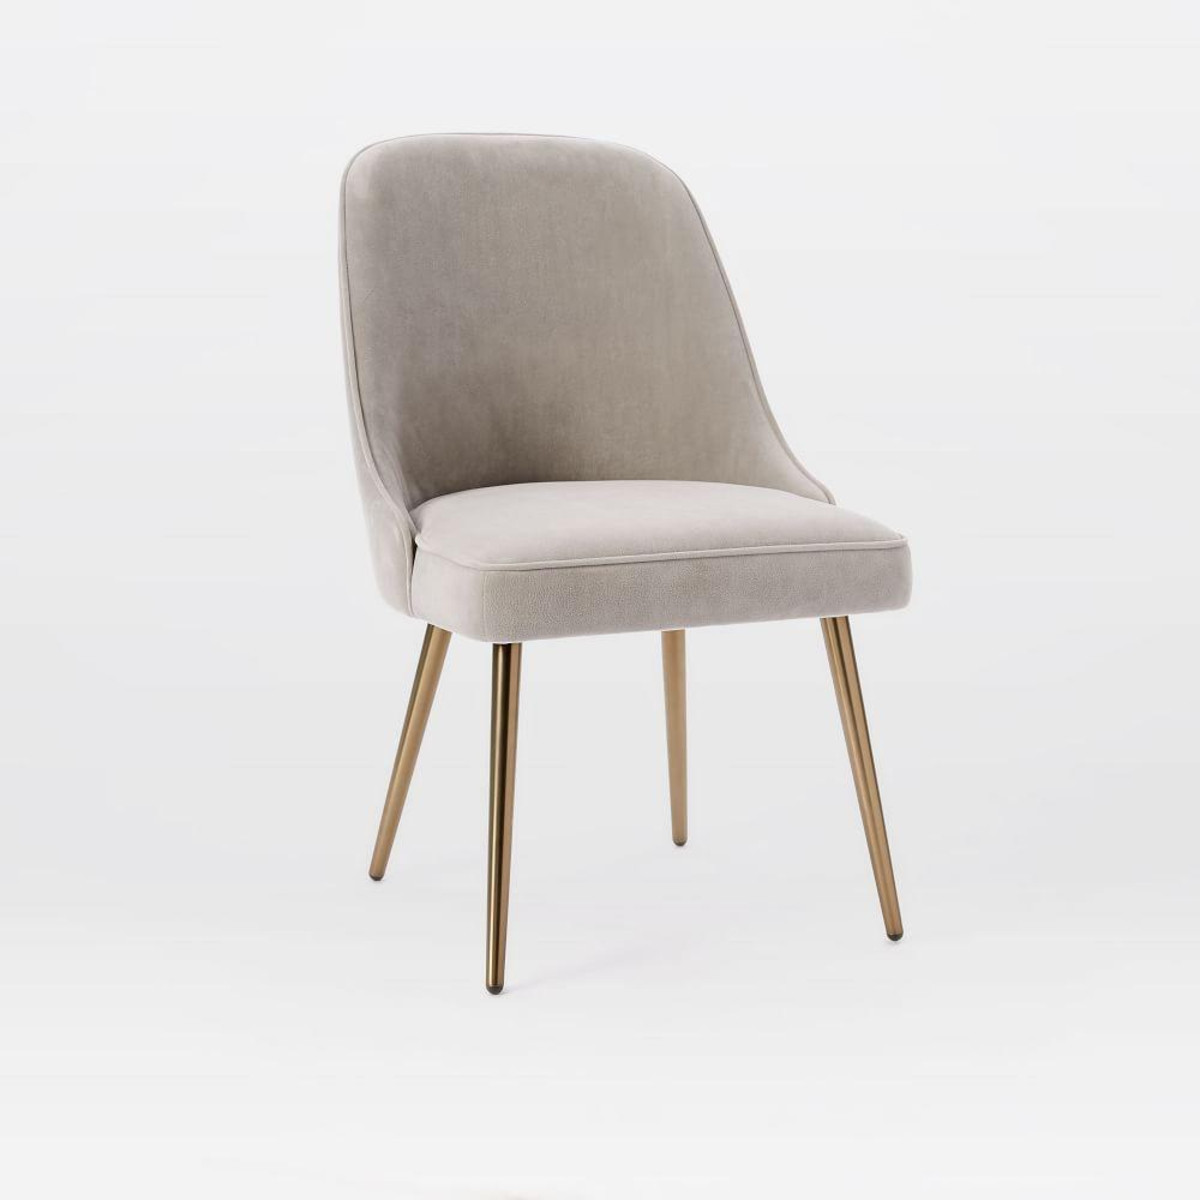 Best ideas about Mid Century Dining Chair . Save or Pin Mid Century Upholstered Dining Chair Velvet Now.